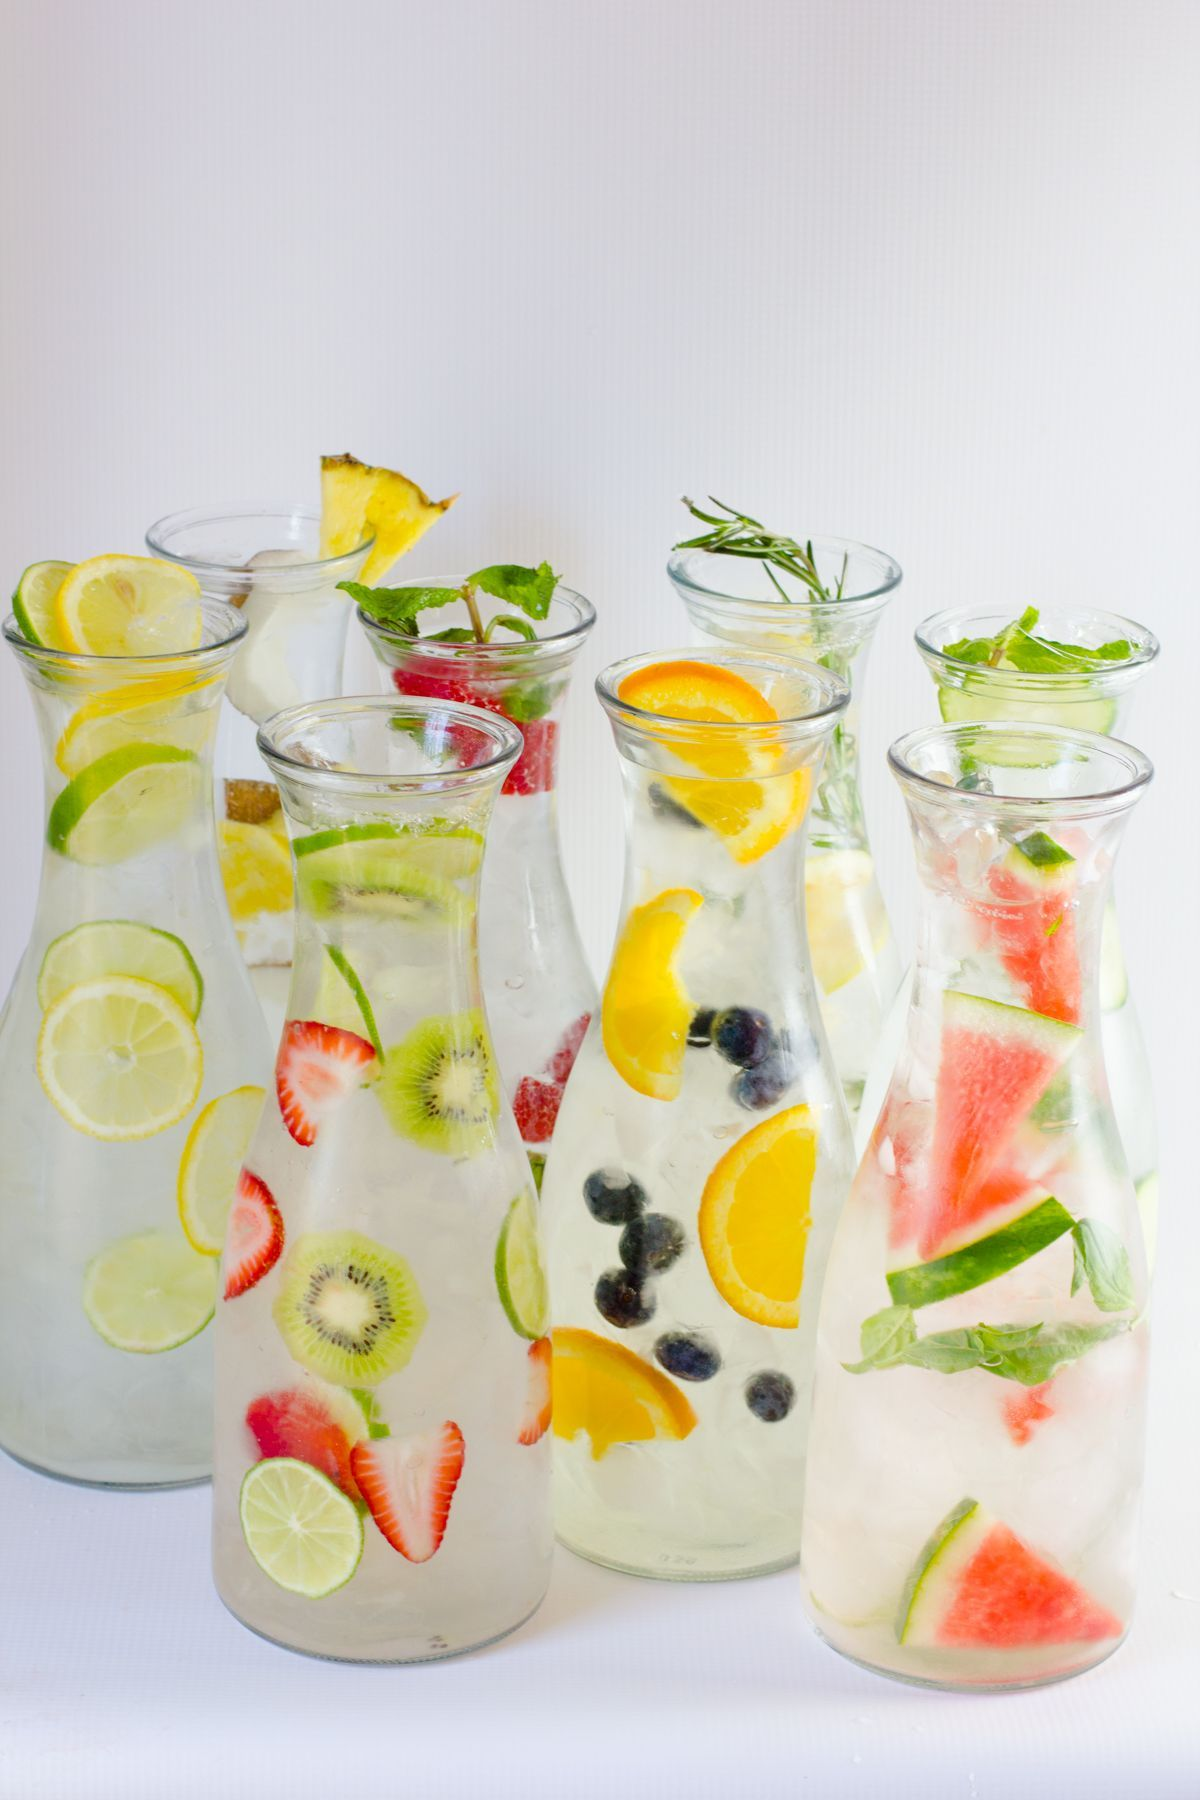 8 Infused Water Combos to Keep You Hydrated #college party #Combos #Hydrated #Infused #Party #party decorations #party deko #party drinks #party getränke #party ideas #party ideen #party recipes #partyrezepte #partyrezepte schnelle #partysnack #summer party #summer party drinks #Water